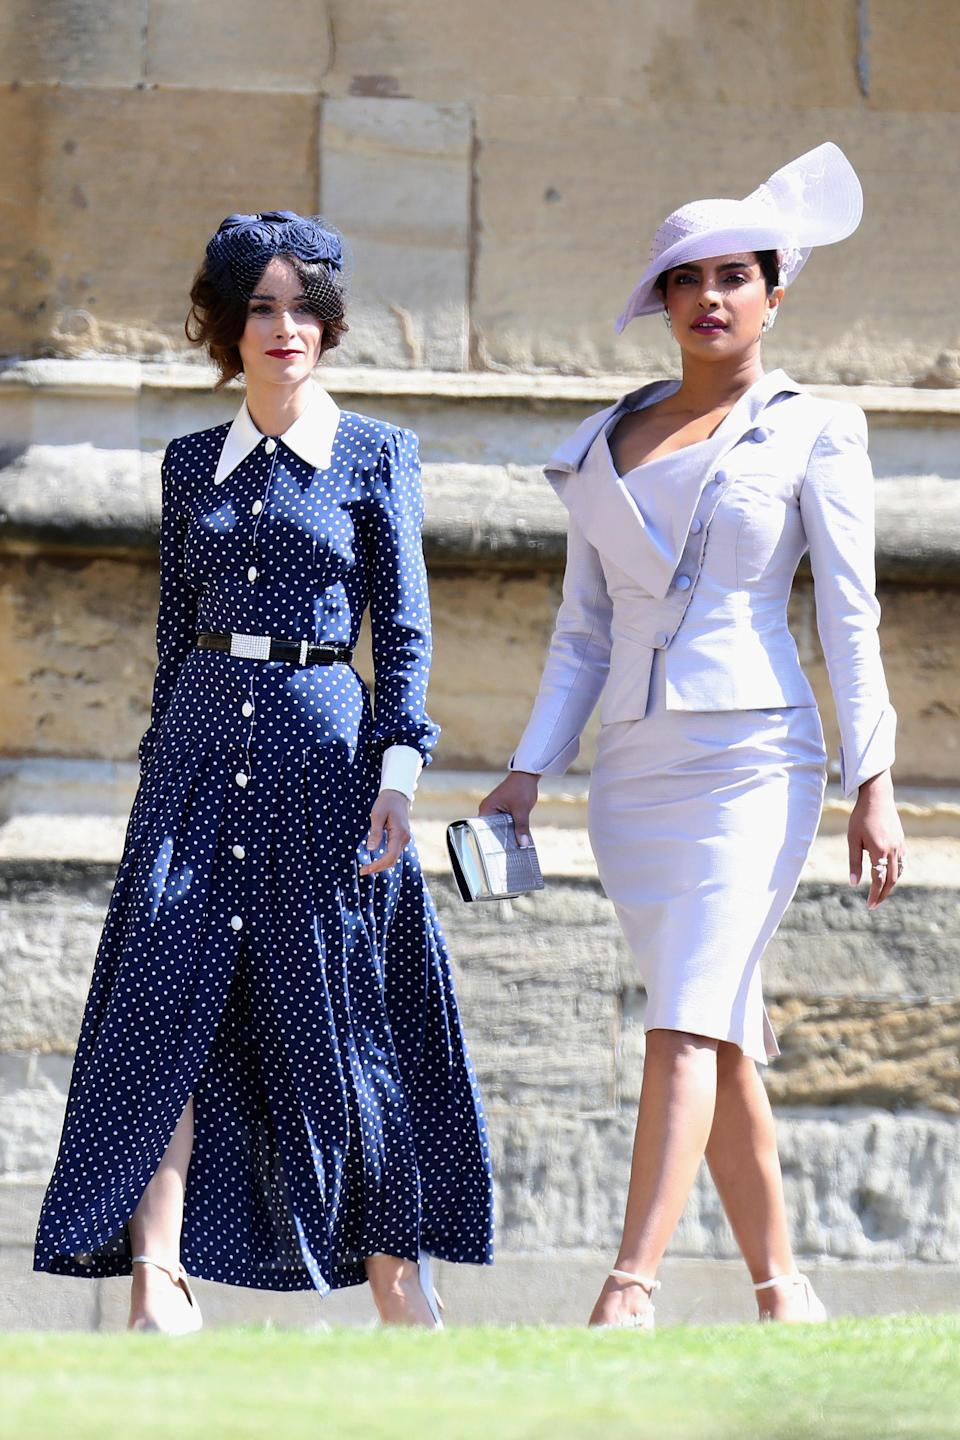 Priyanka Chopra famously attended the royal wedding – here, she is pictured with 'Suits' actress Abigail Spencer [Photo: Getty]